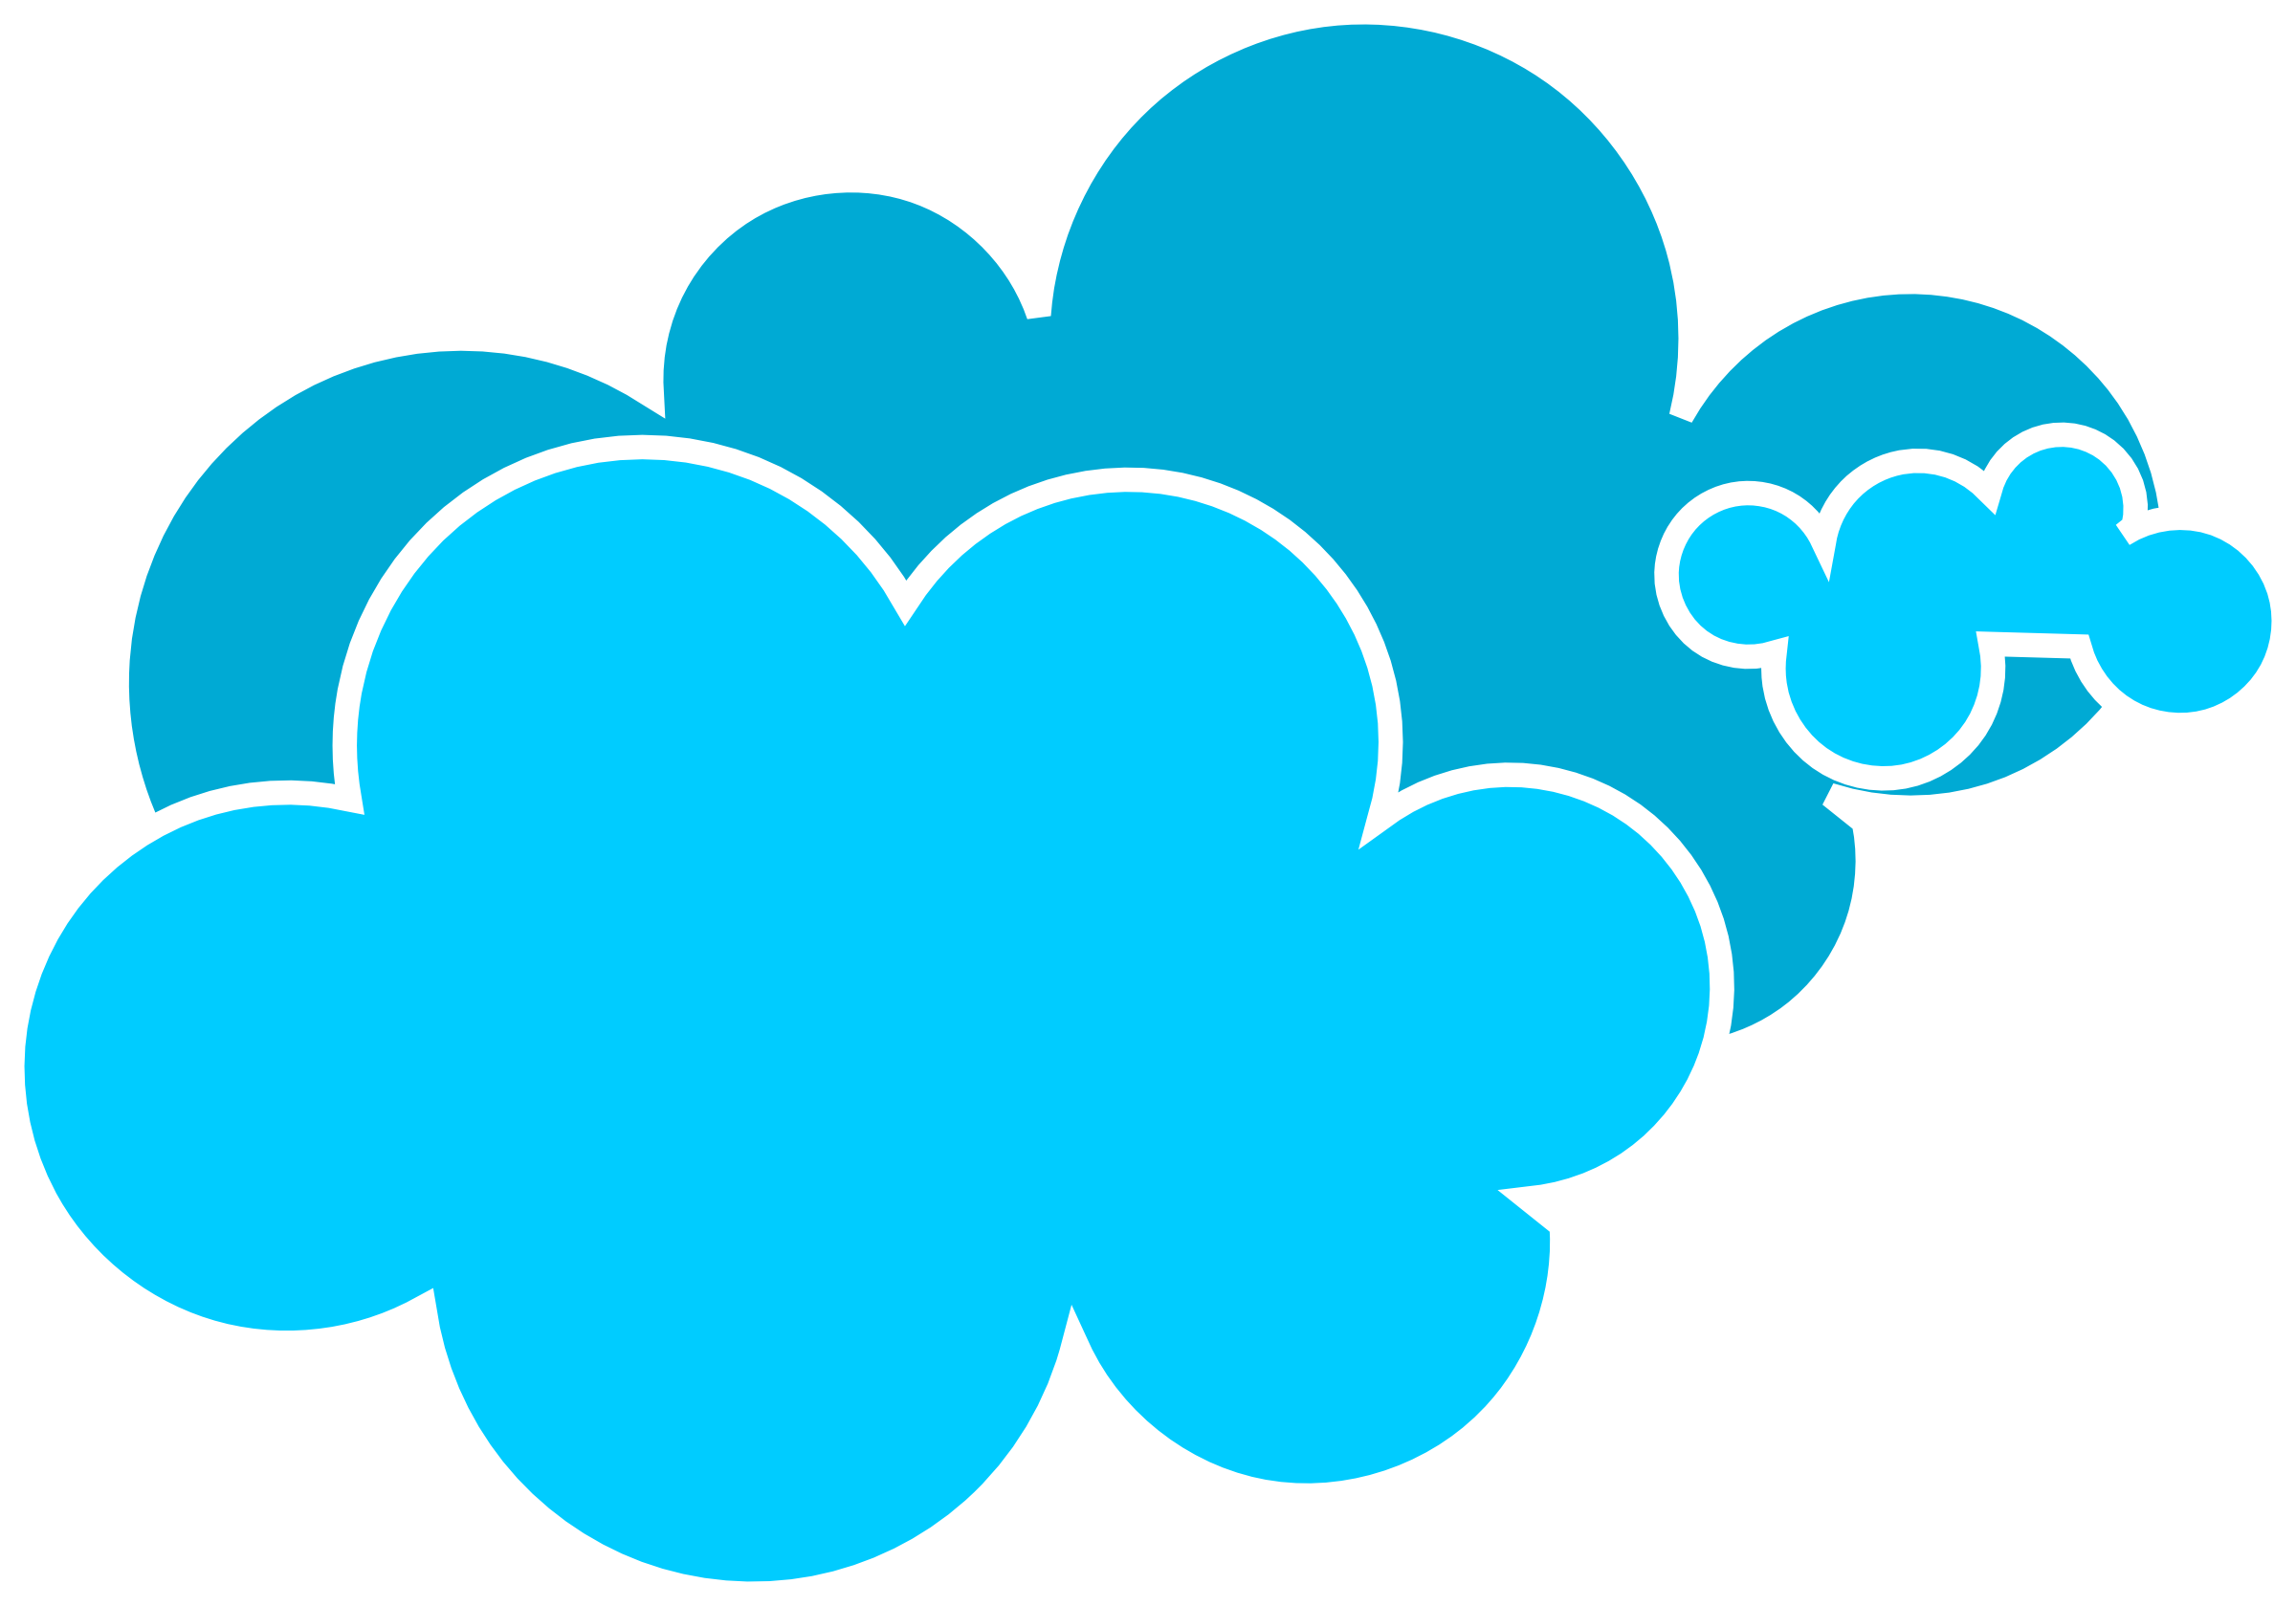 99 Cloud Clipart Free Download Transparent Png Cloud Clipart Bebe Personalizado Desenhos Batizado